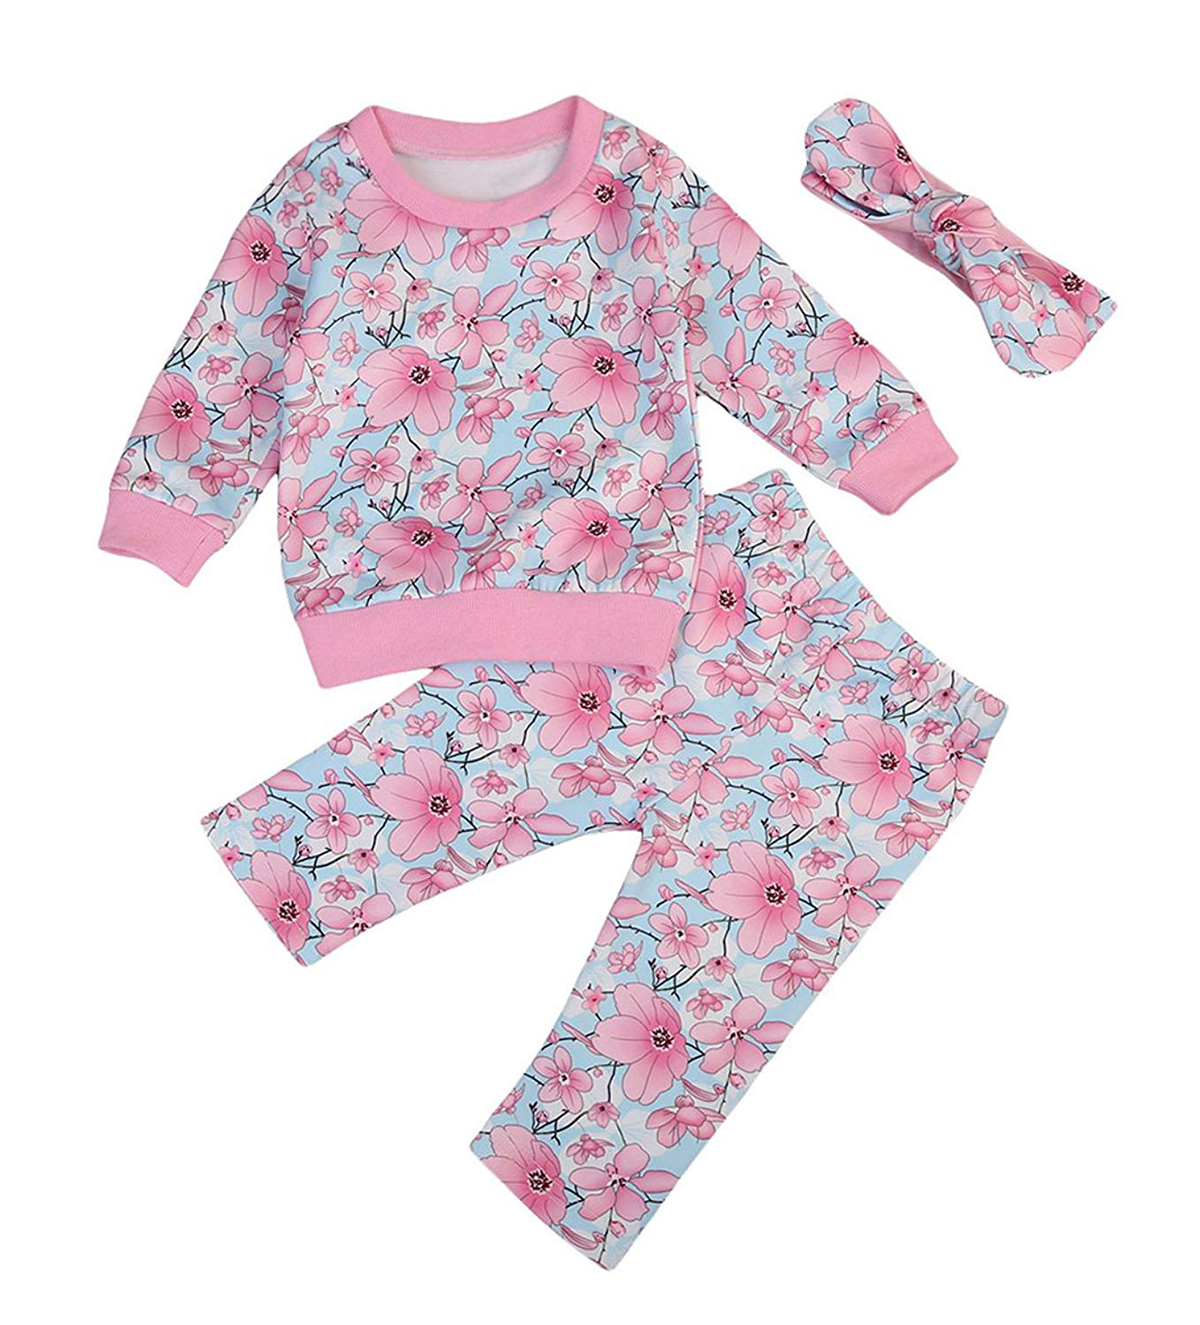 Newborn Baby Girls Clothes Floral Sweatshirt Pants Tracksuit Headband Set Long Sleeve Winter Clothes Outfits Set